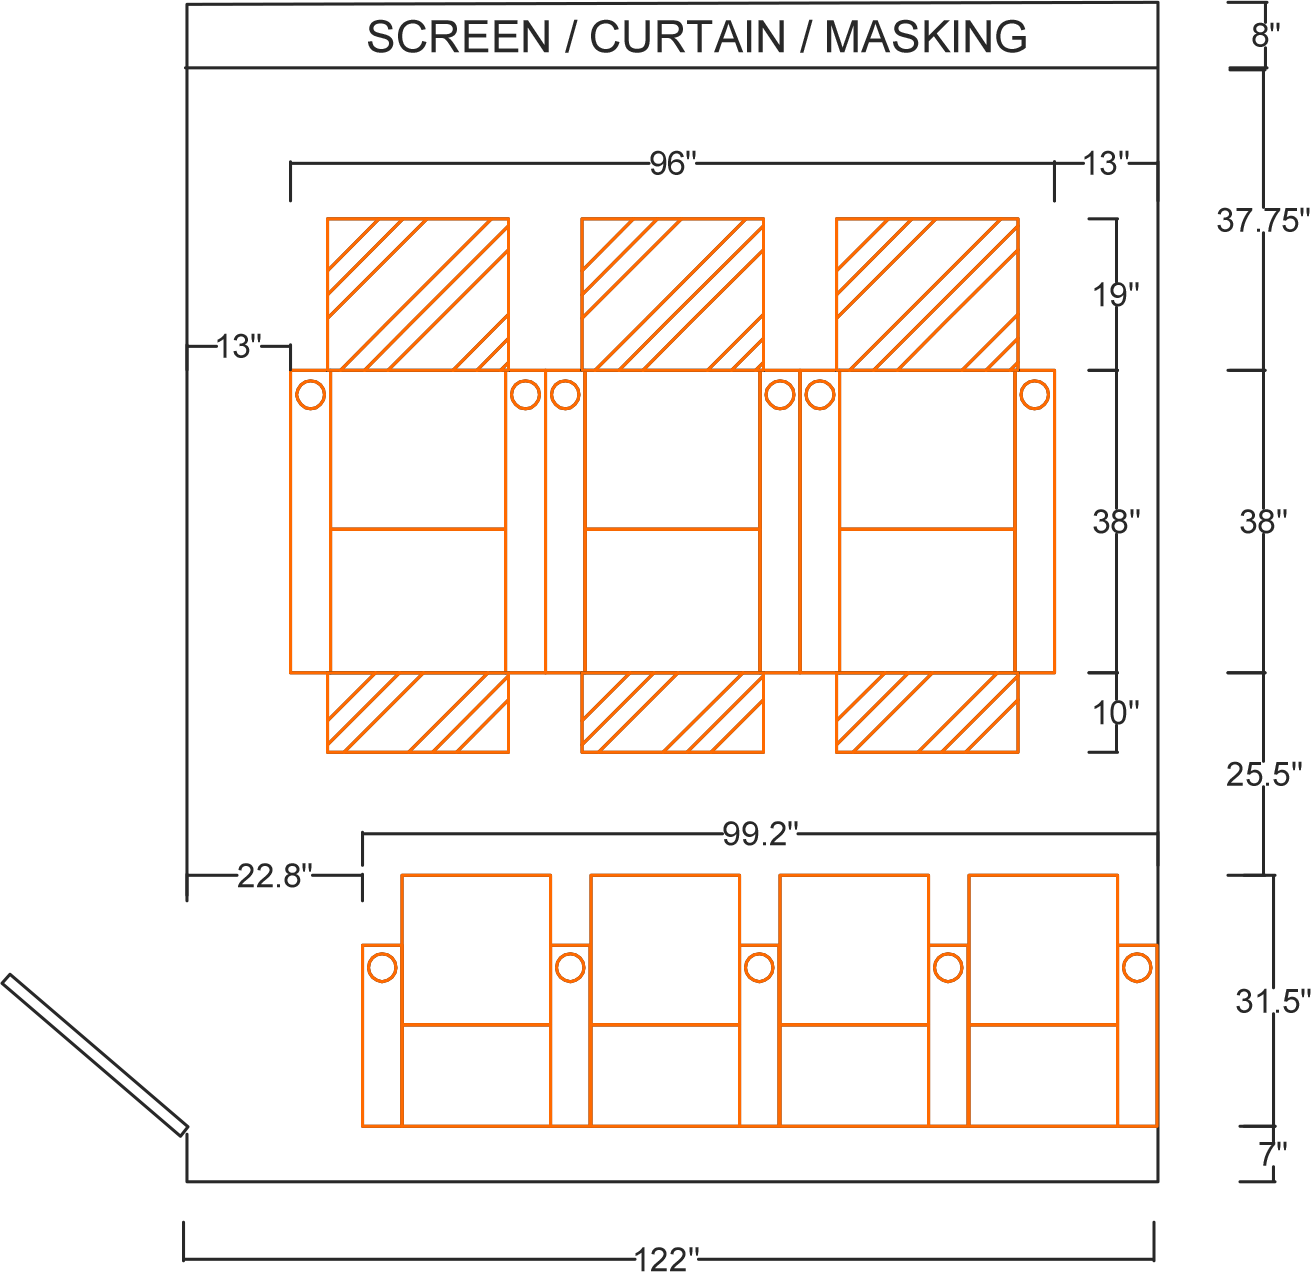 CAD sketch of a home theater design.